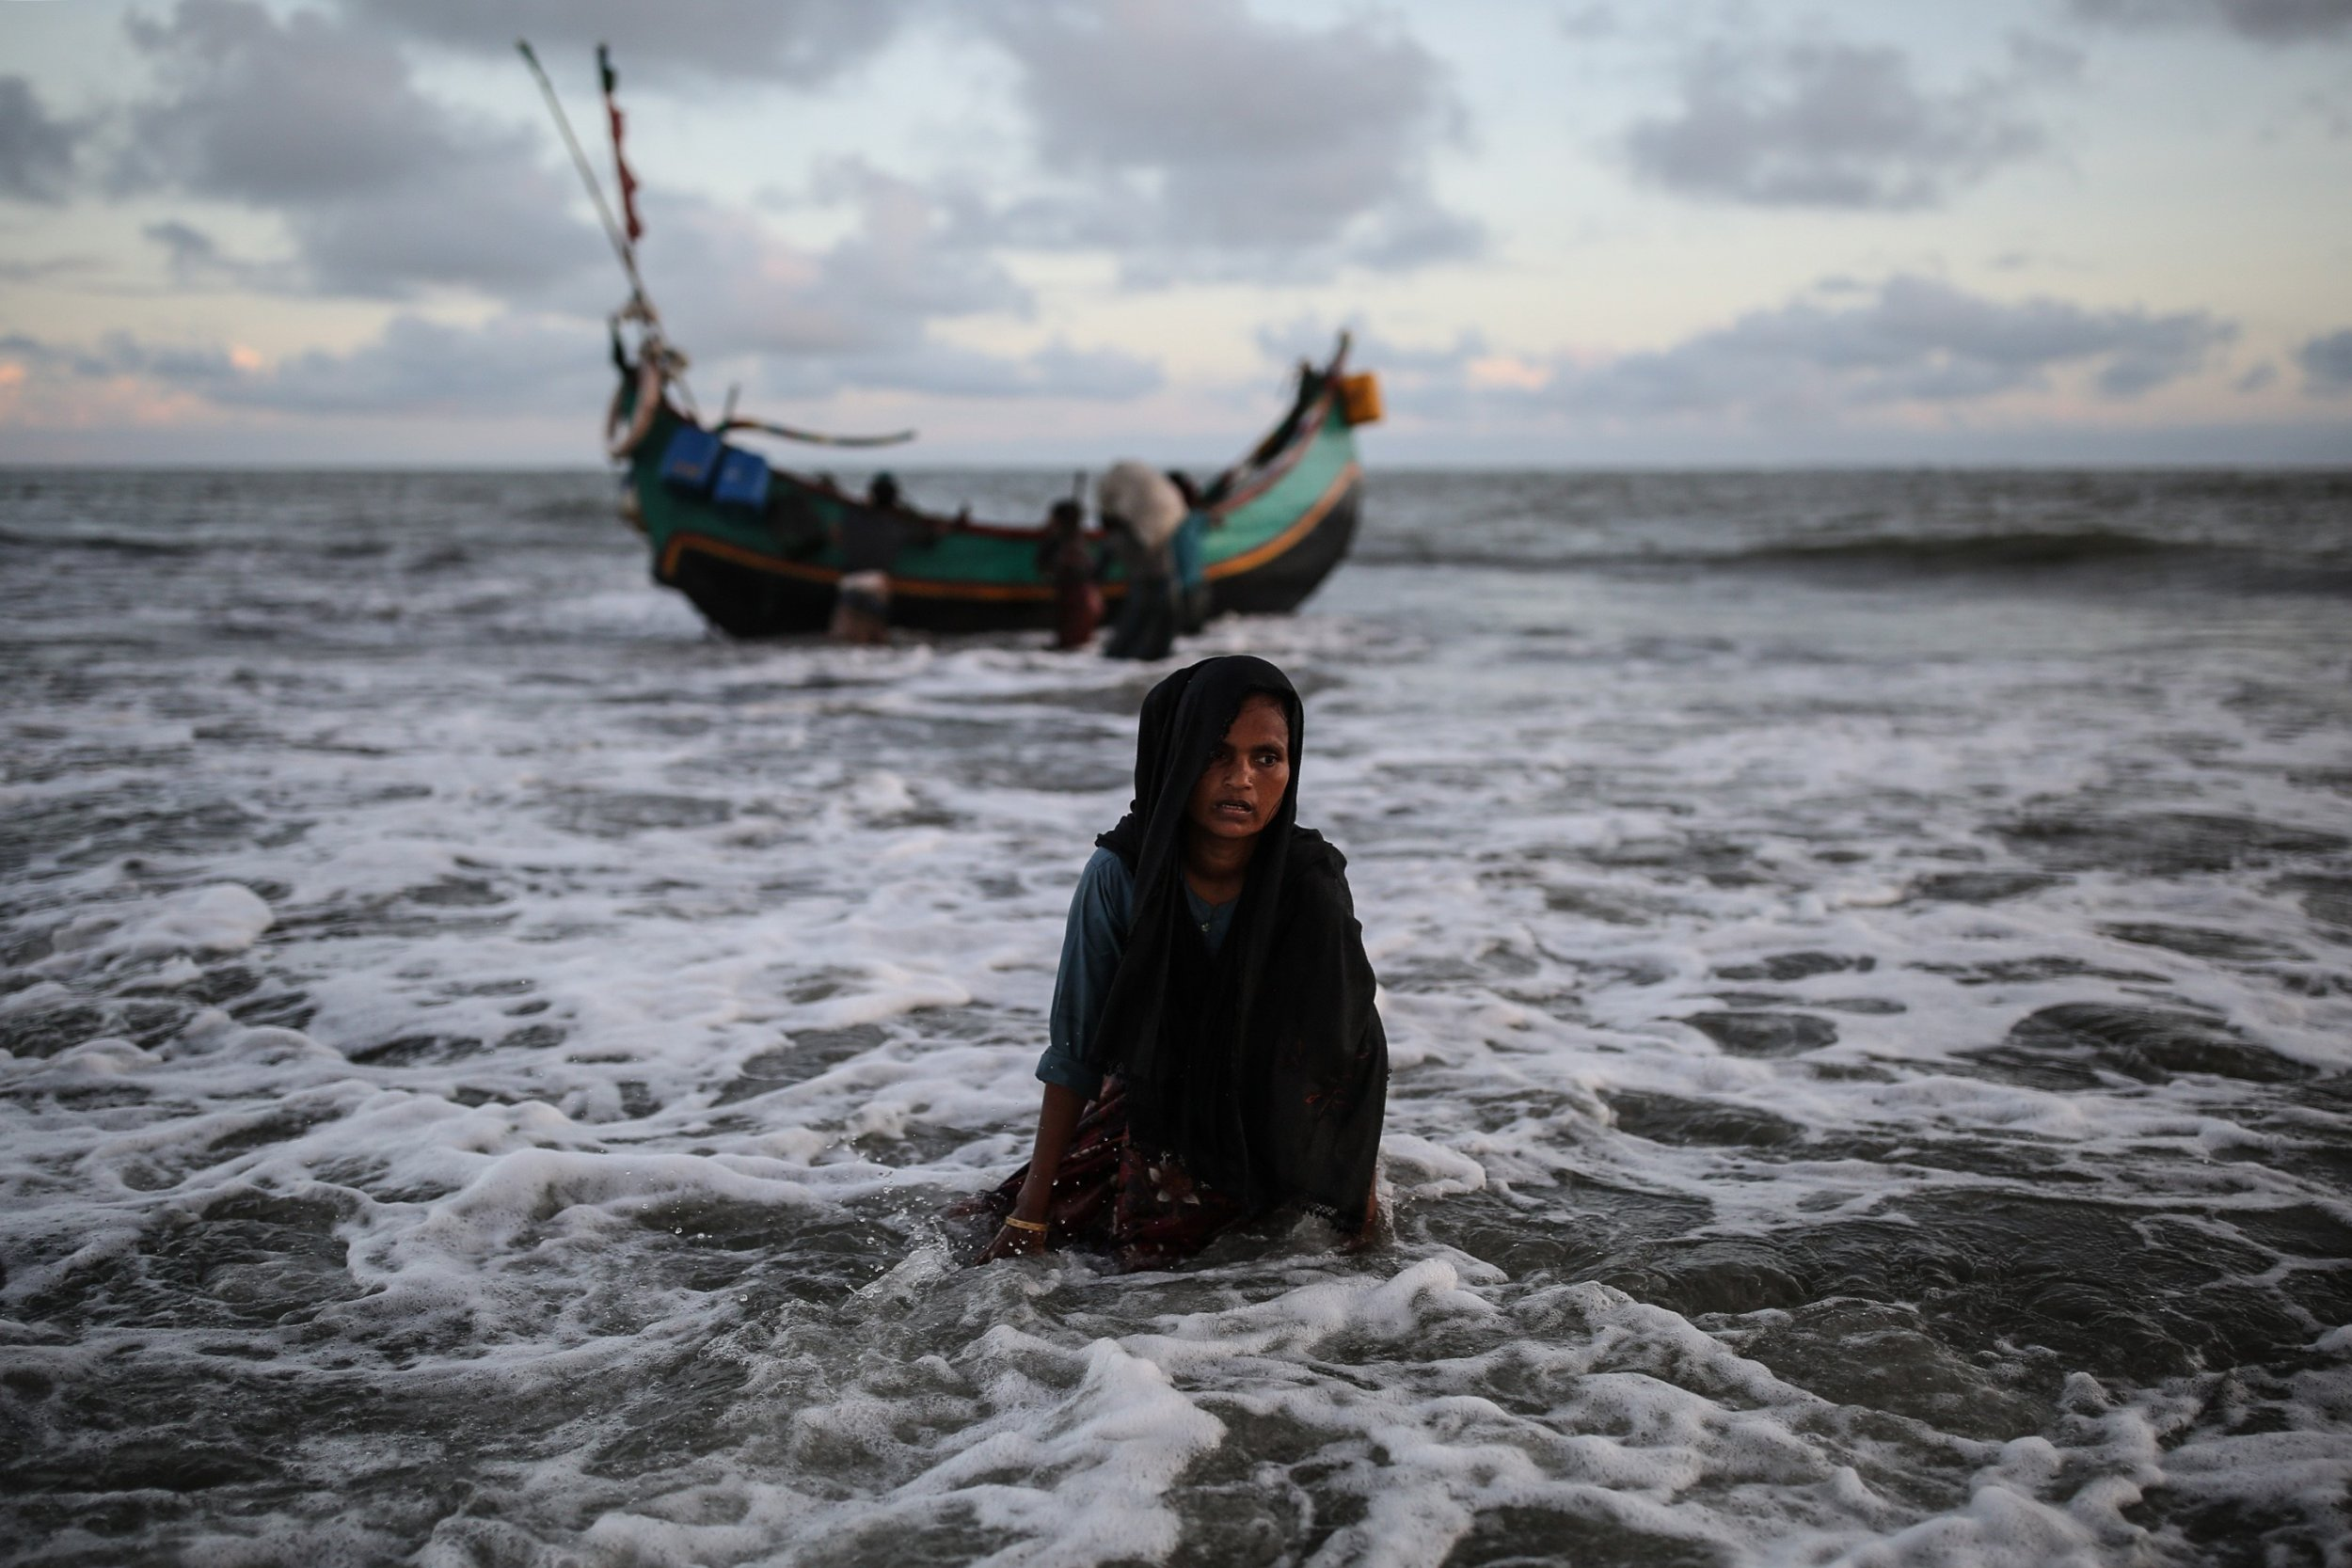 09_15_Rohingya_Woman